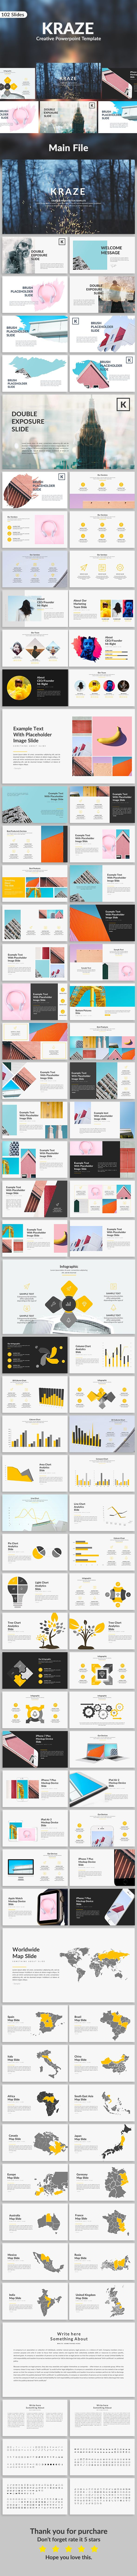 Kraze Creative Powerpoint Template #International Food #pitch deck • Download ➝ https://graphicriver.net/item/kraze-creative-powerpoint-template/19462956?ref=pxcr